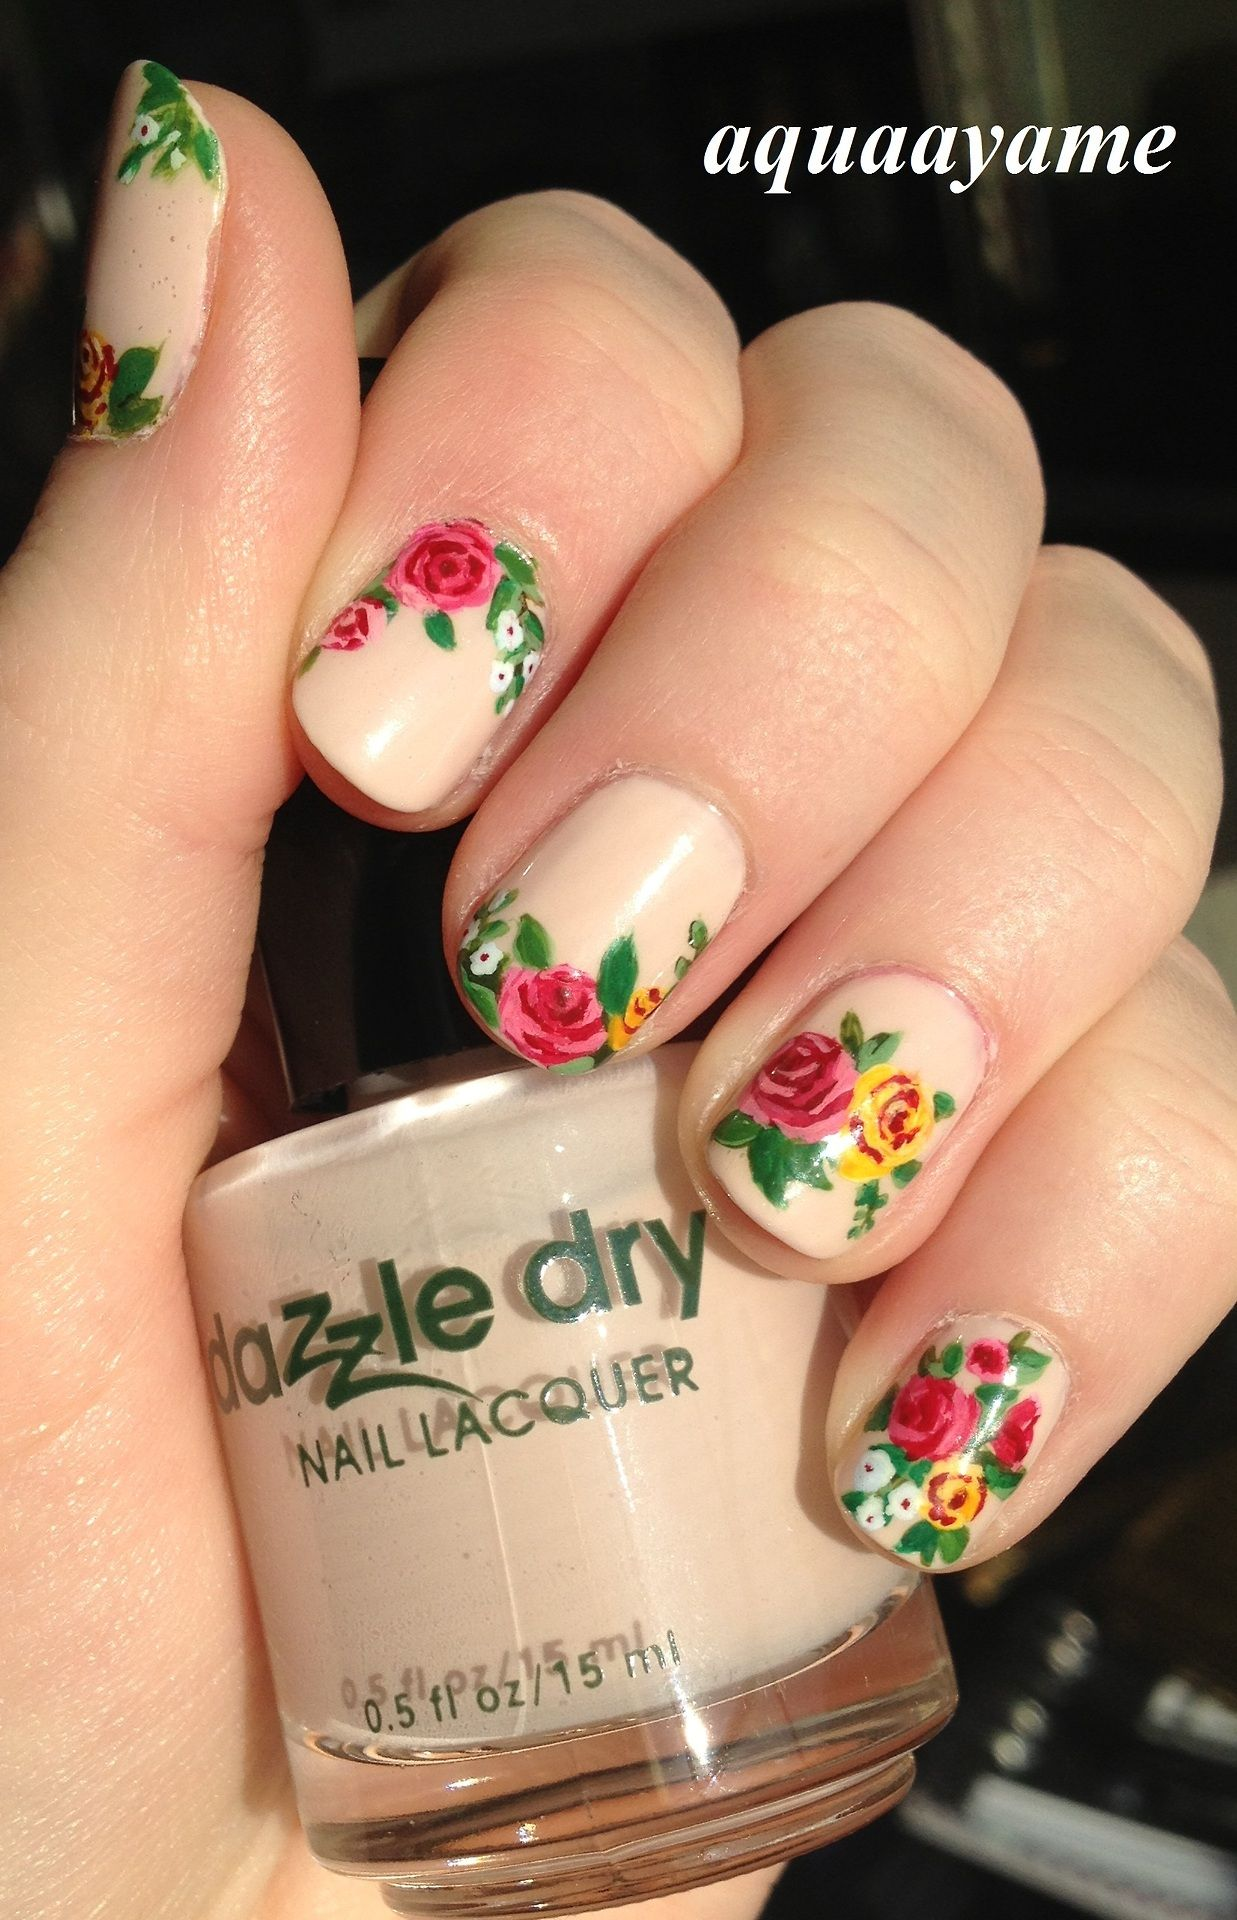 top diy nail art ideas and products for 2017 | flower nails